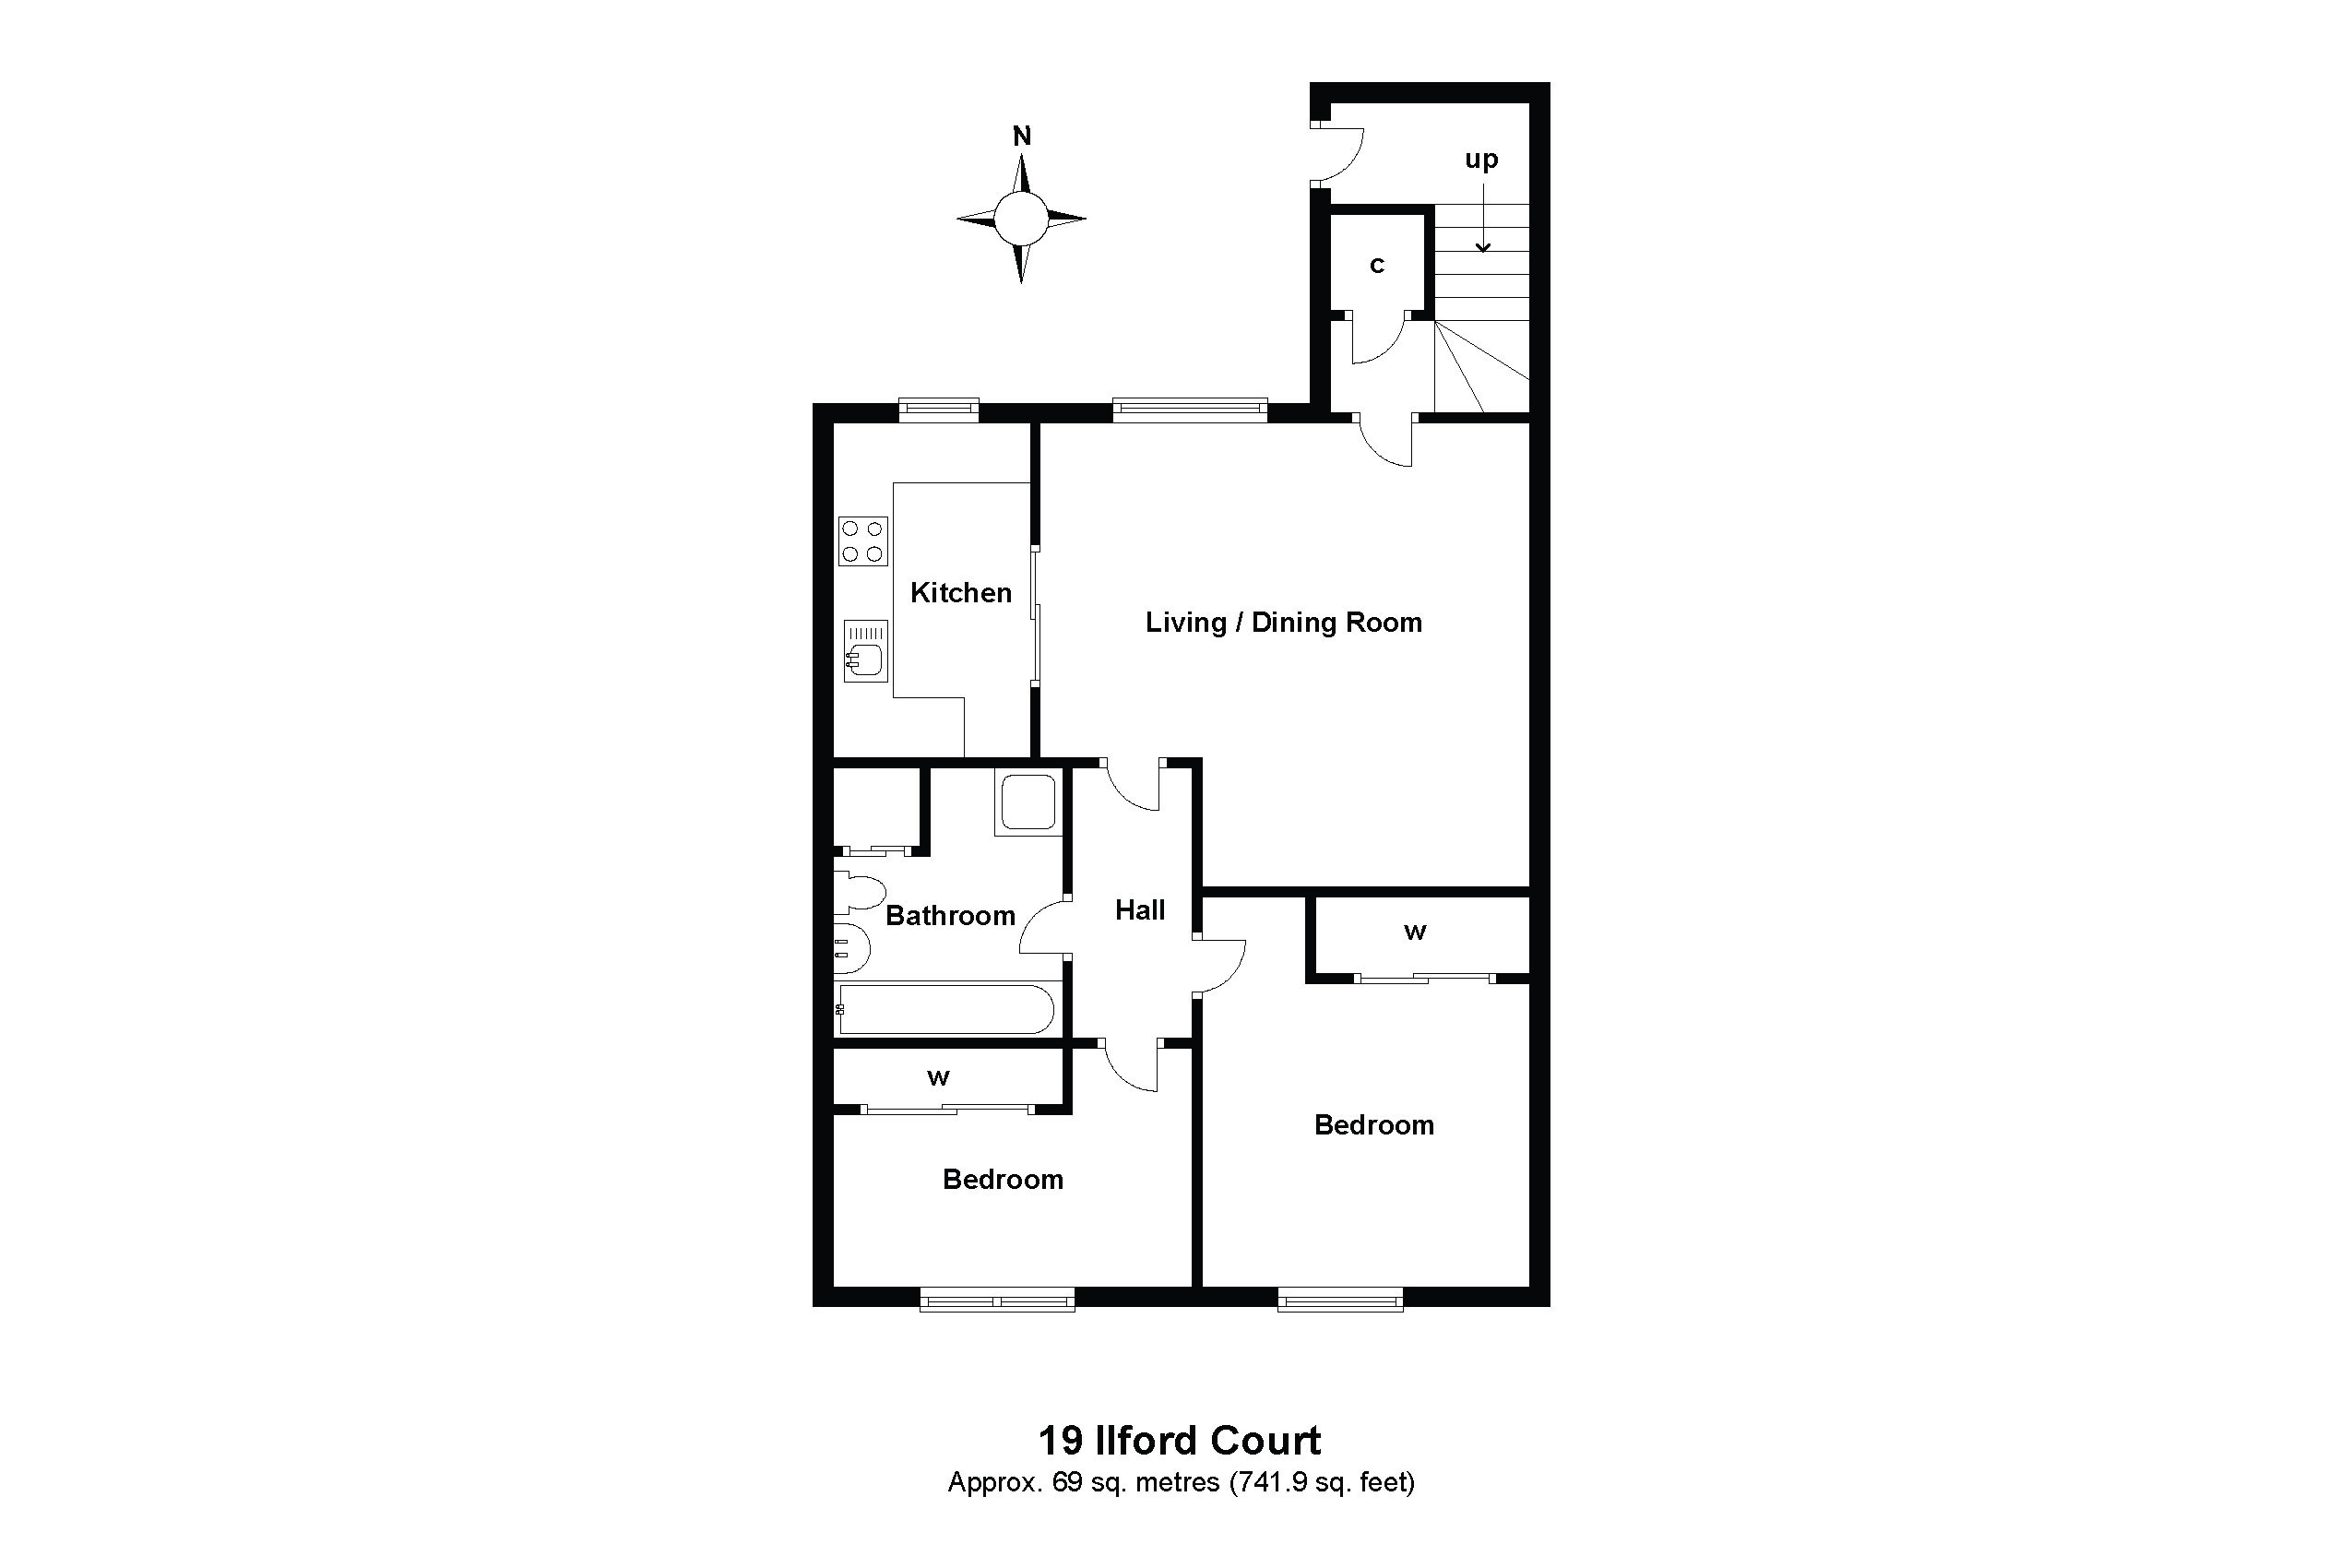 19 Ilford Court Floorplan